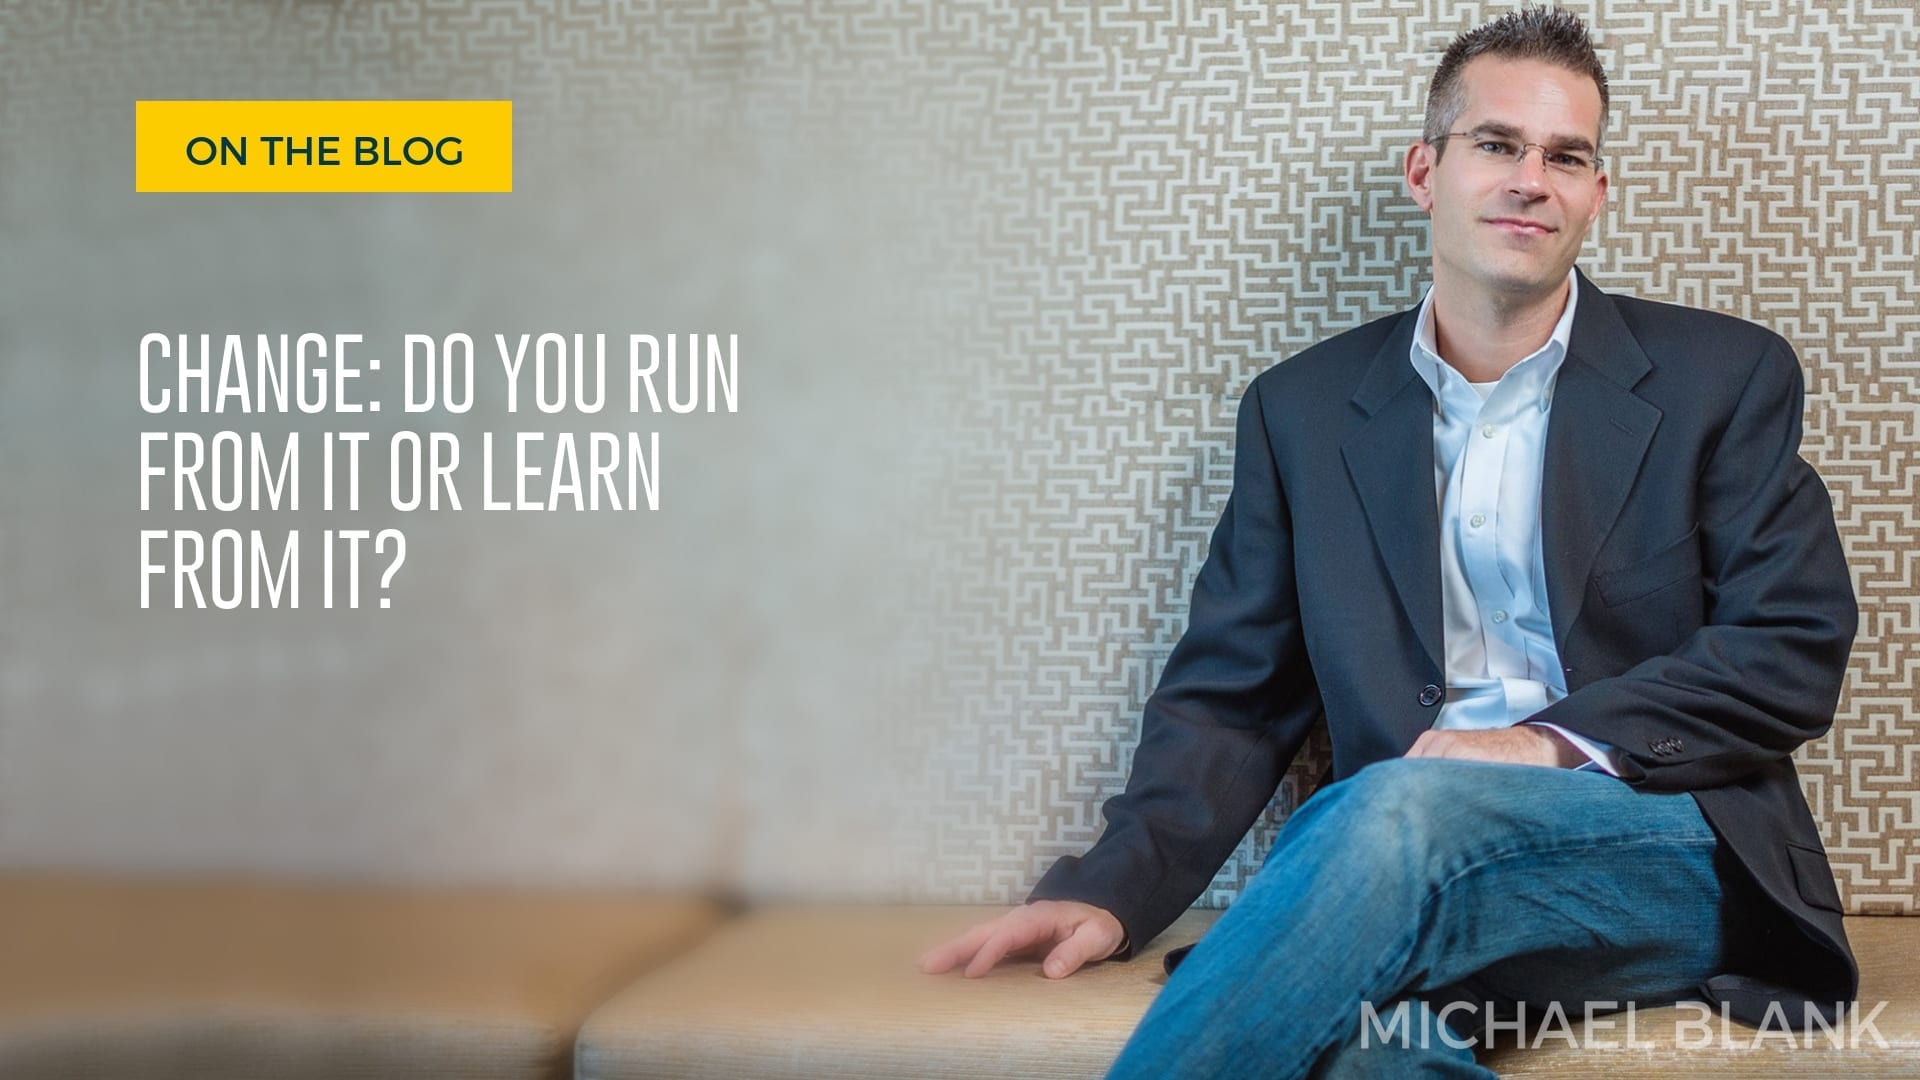 Change: Do You Run from It Or Learn from It?